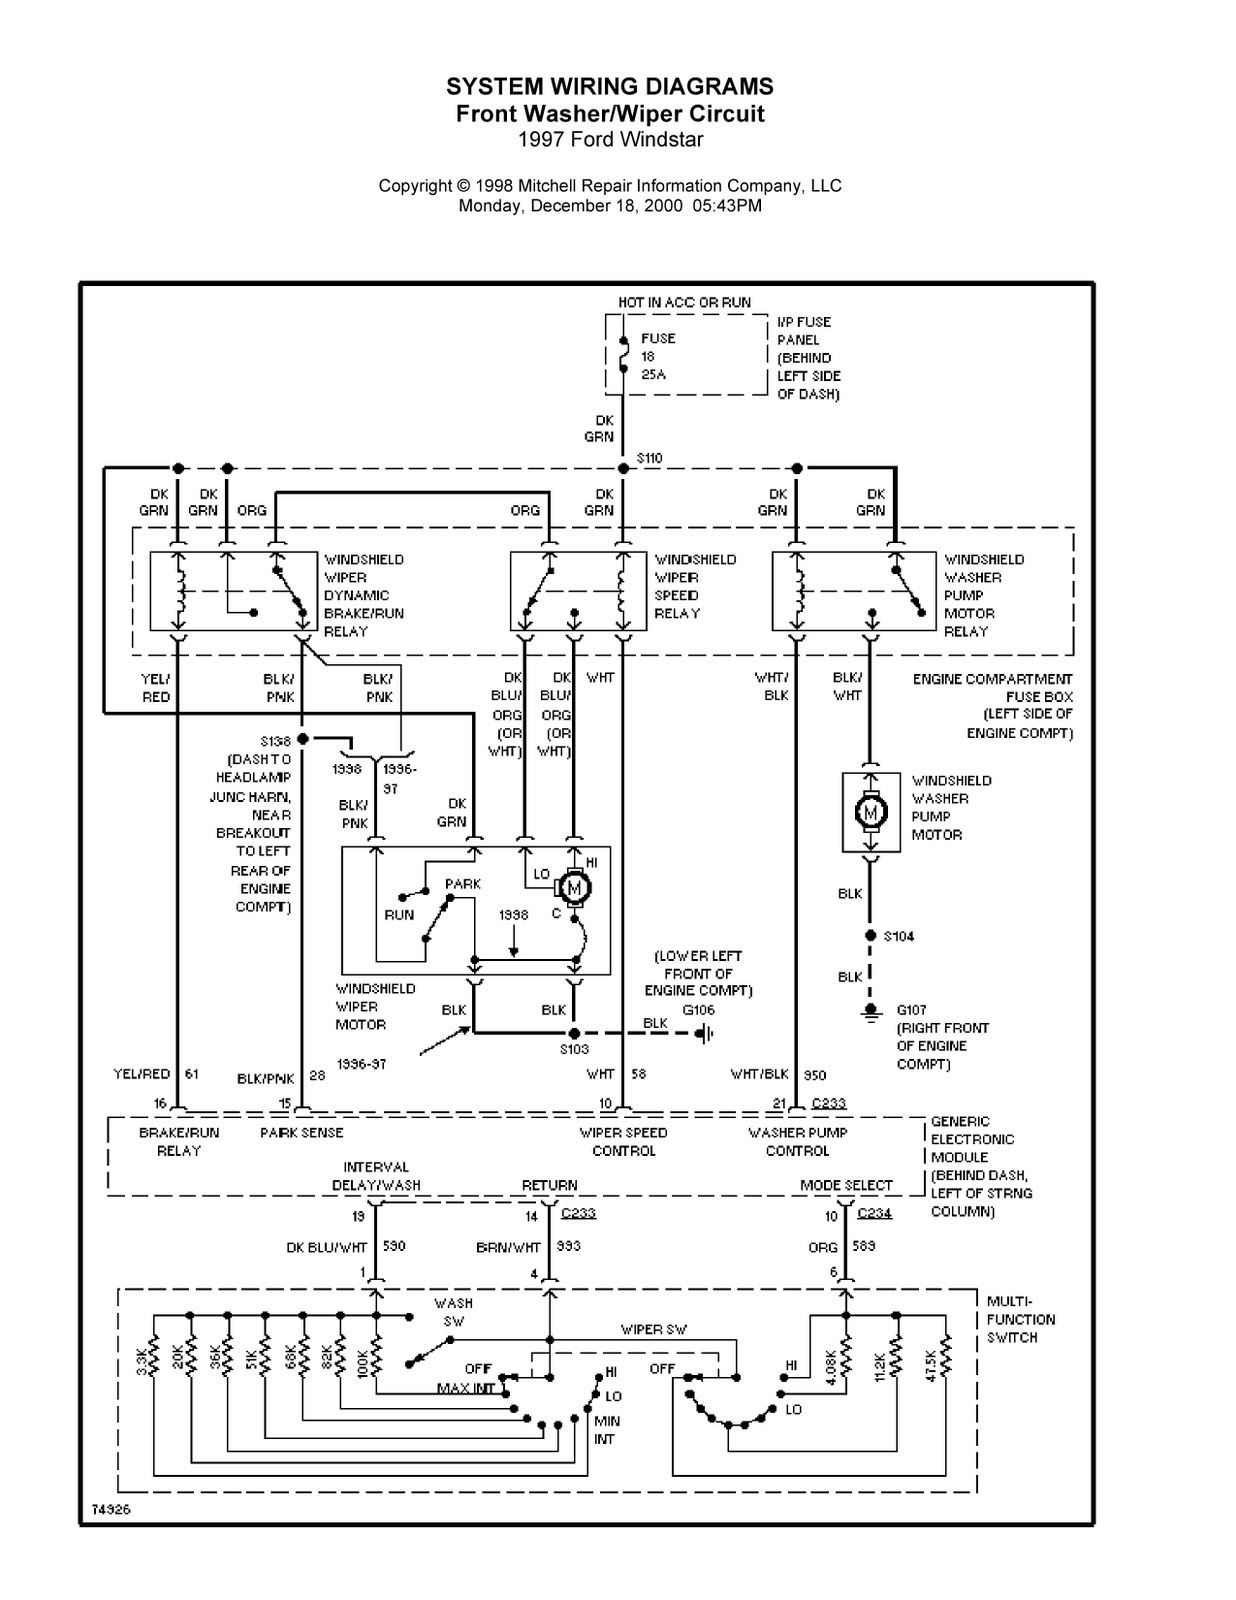 0051 1997 ford windstar complete system wiring diagrams wiring  at readyjetset.co